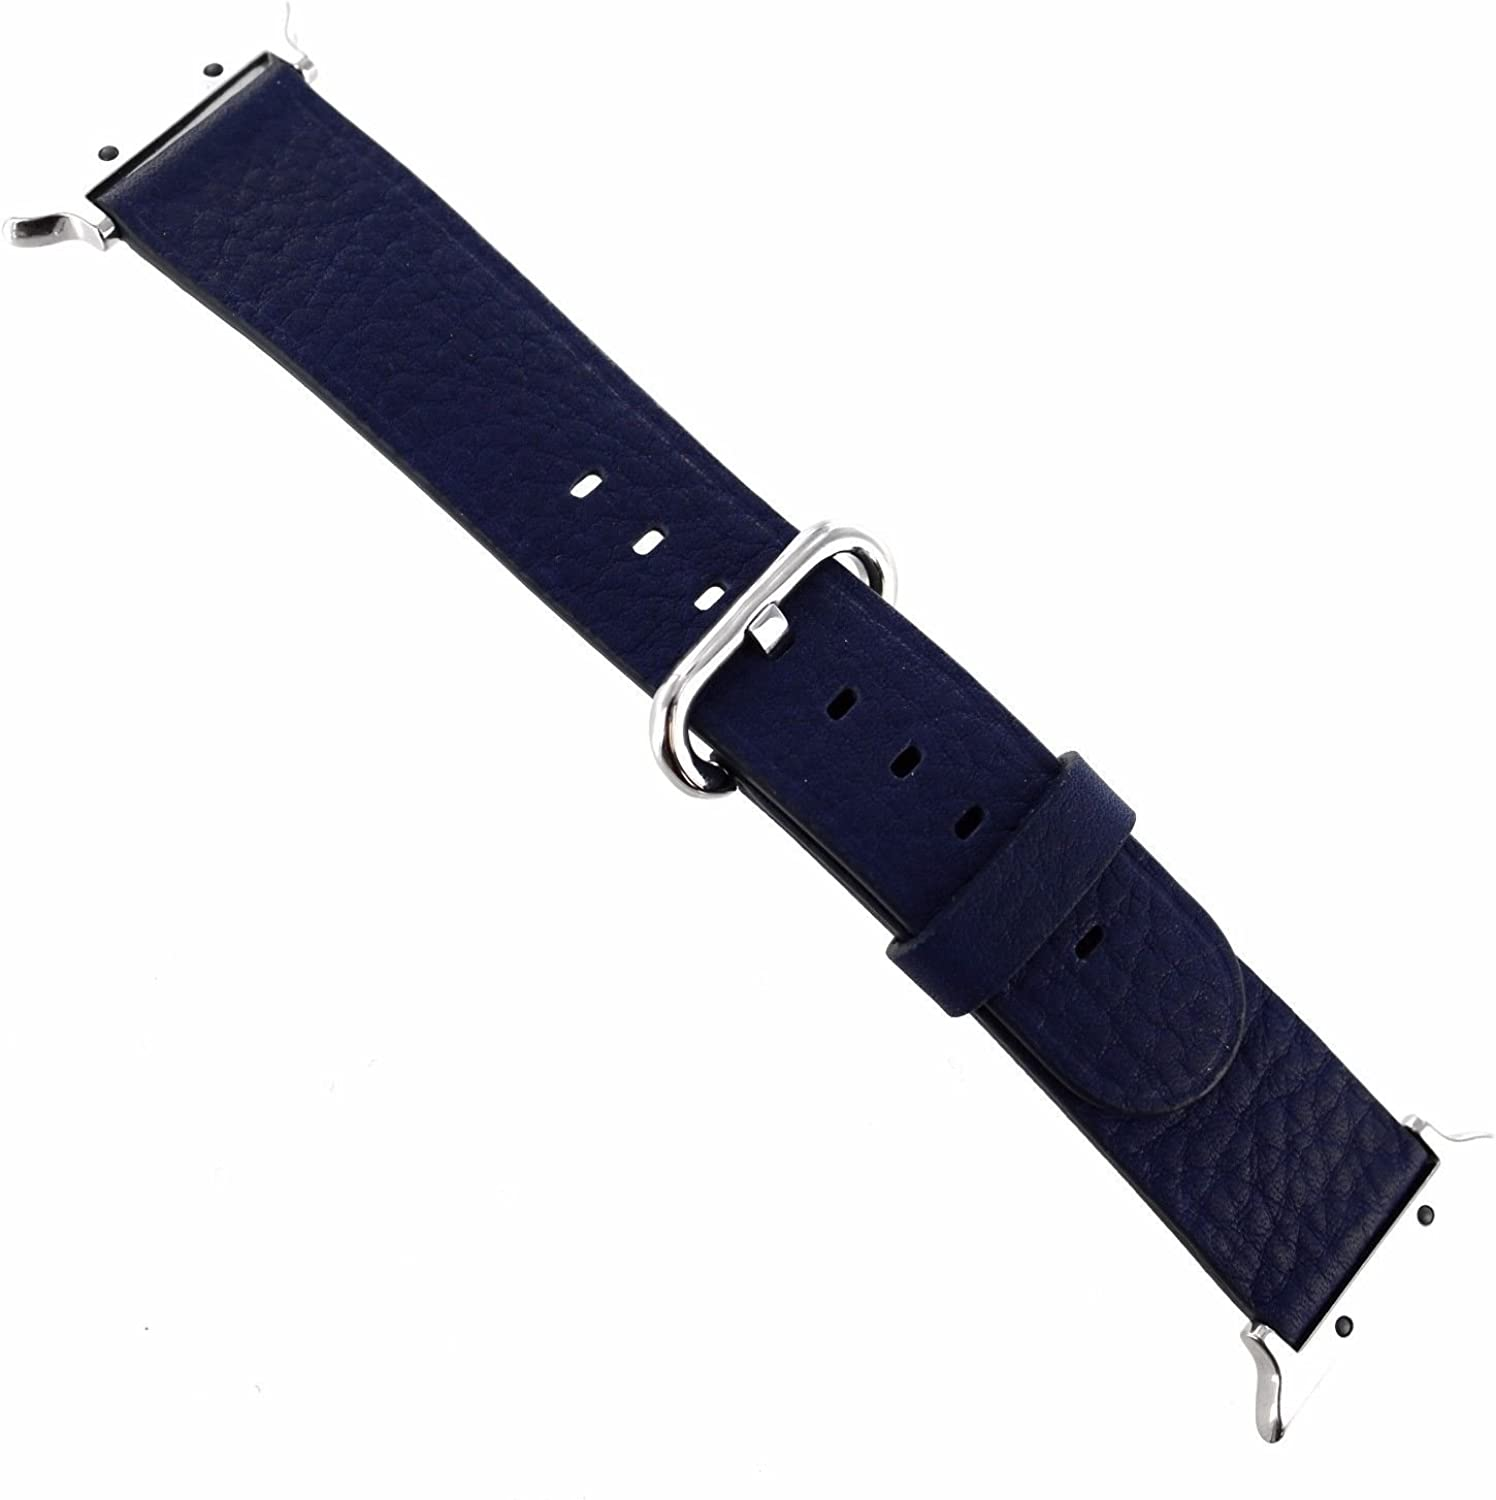 38mm Navy Genuine Leather Watch Band with Metal Adapters Fits Apple Watch